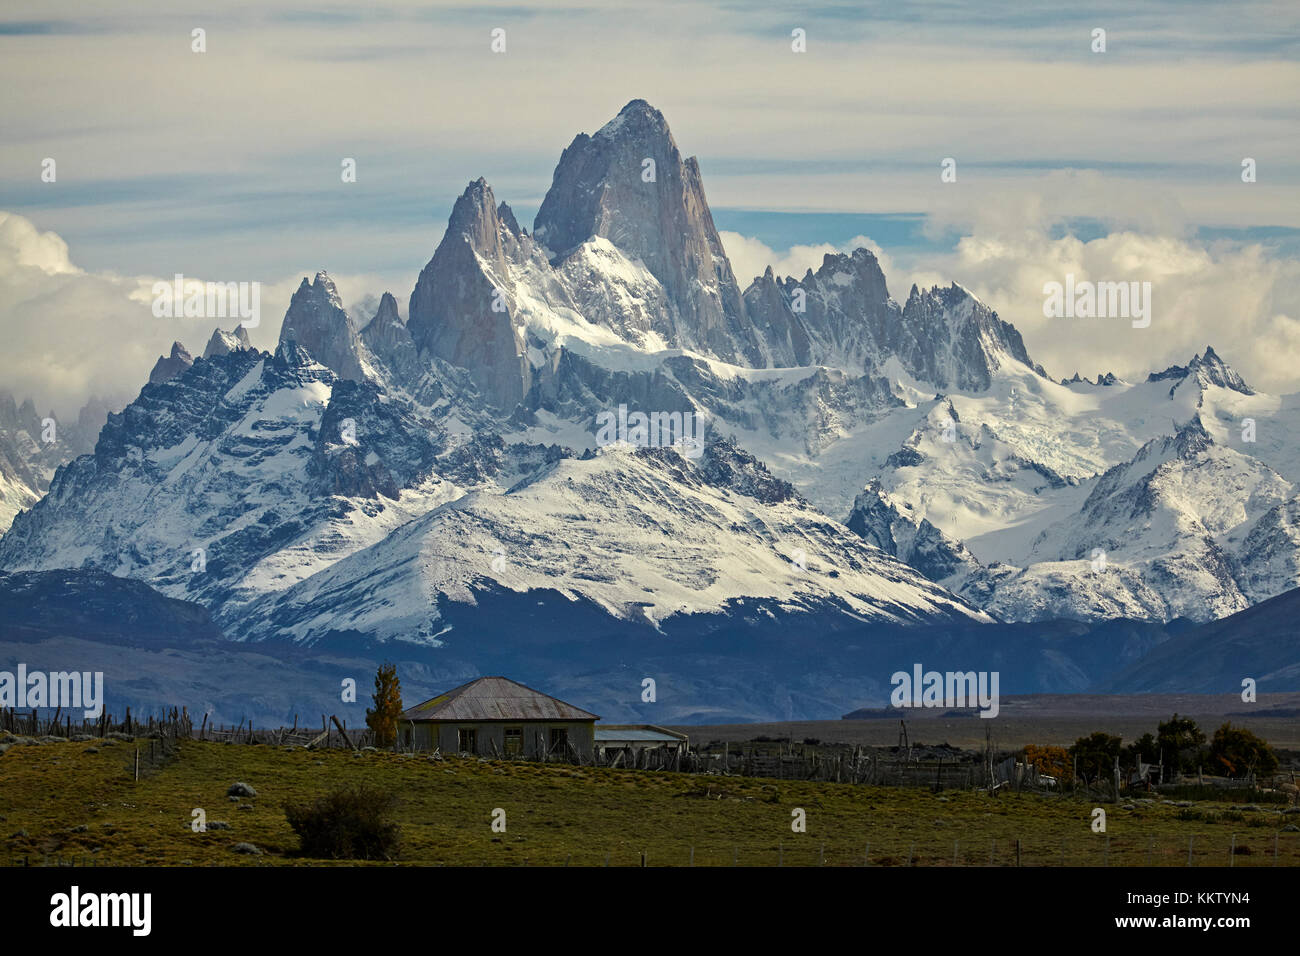 Mount Fitz Roy, Parque Nacional Los Glaciares (World Heritage Area), and farm house, Patagonia, Argentina, South - Stock Image